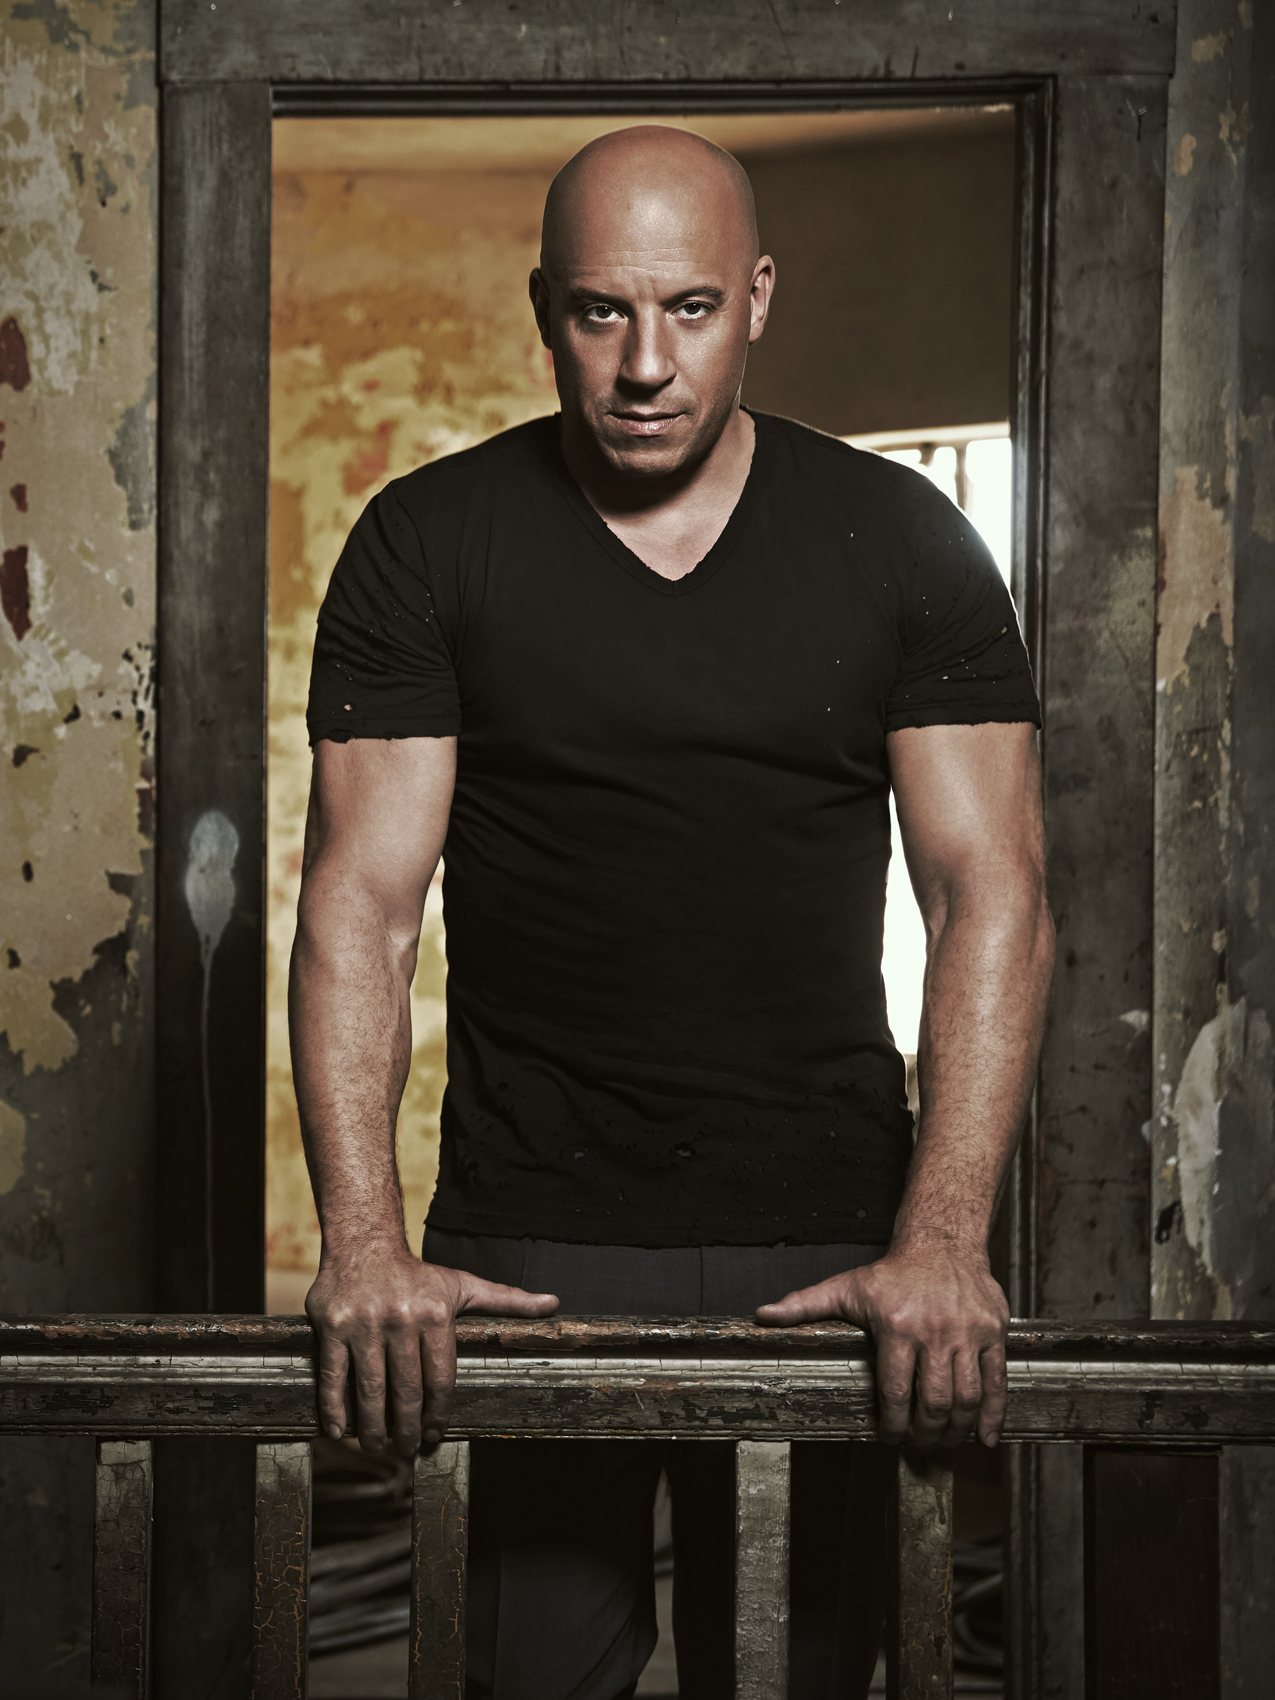 20161104_JR_VinDiesel_1424B_flat_web_v3